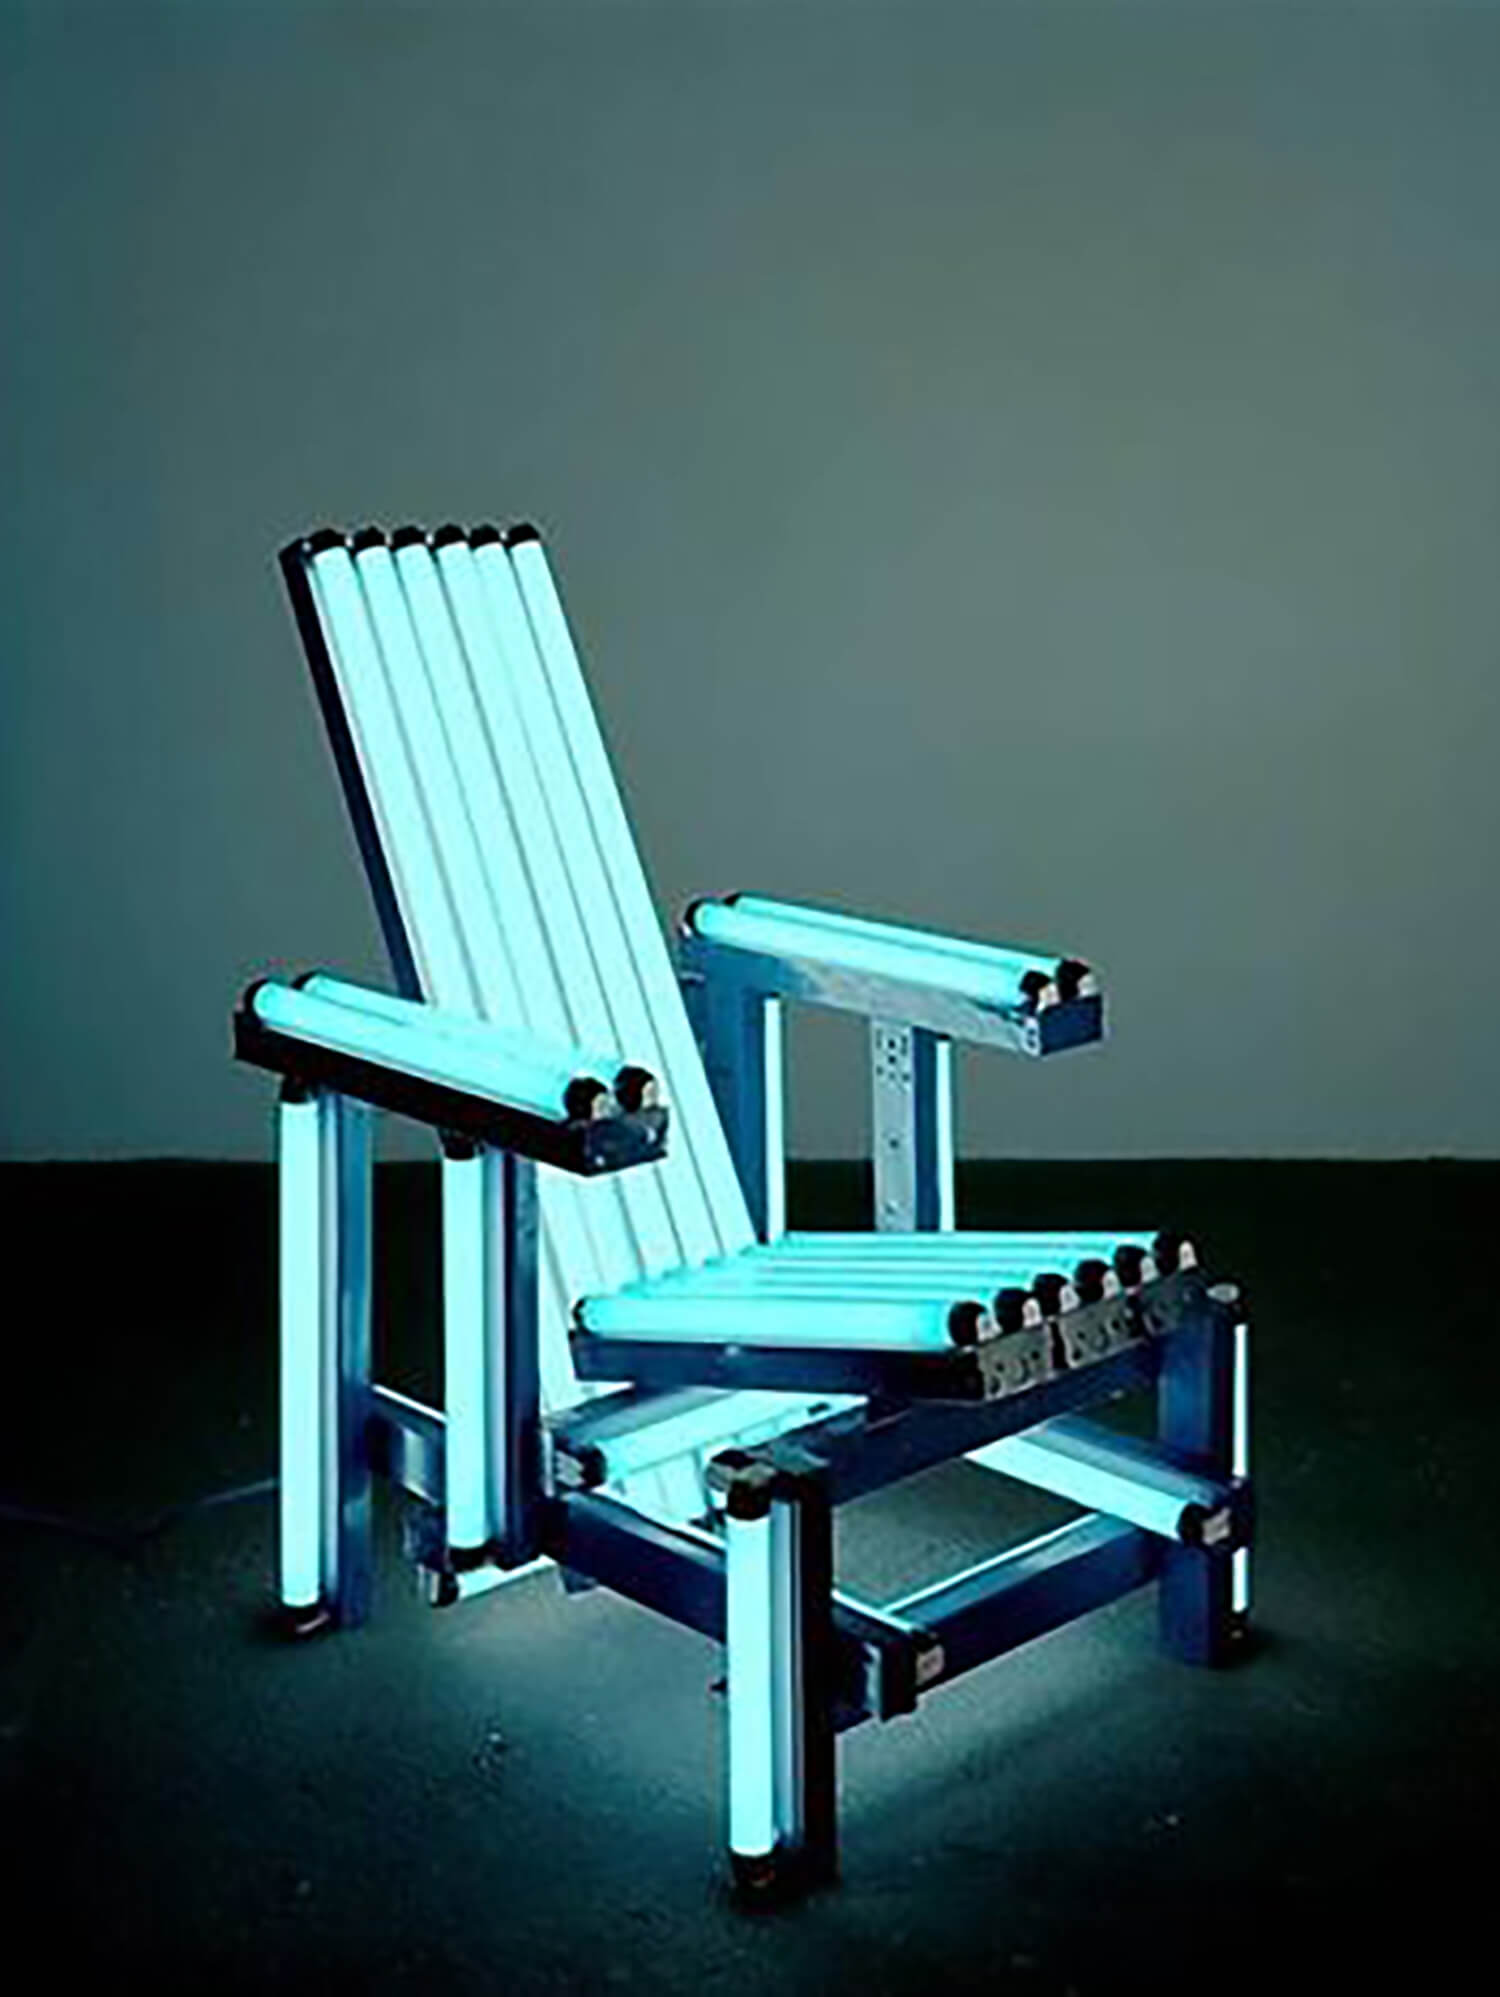 est living style hunter kerry phelan Ivan Navrro Blue Electric Chair 2004